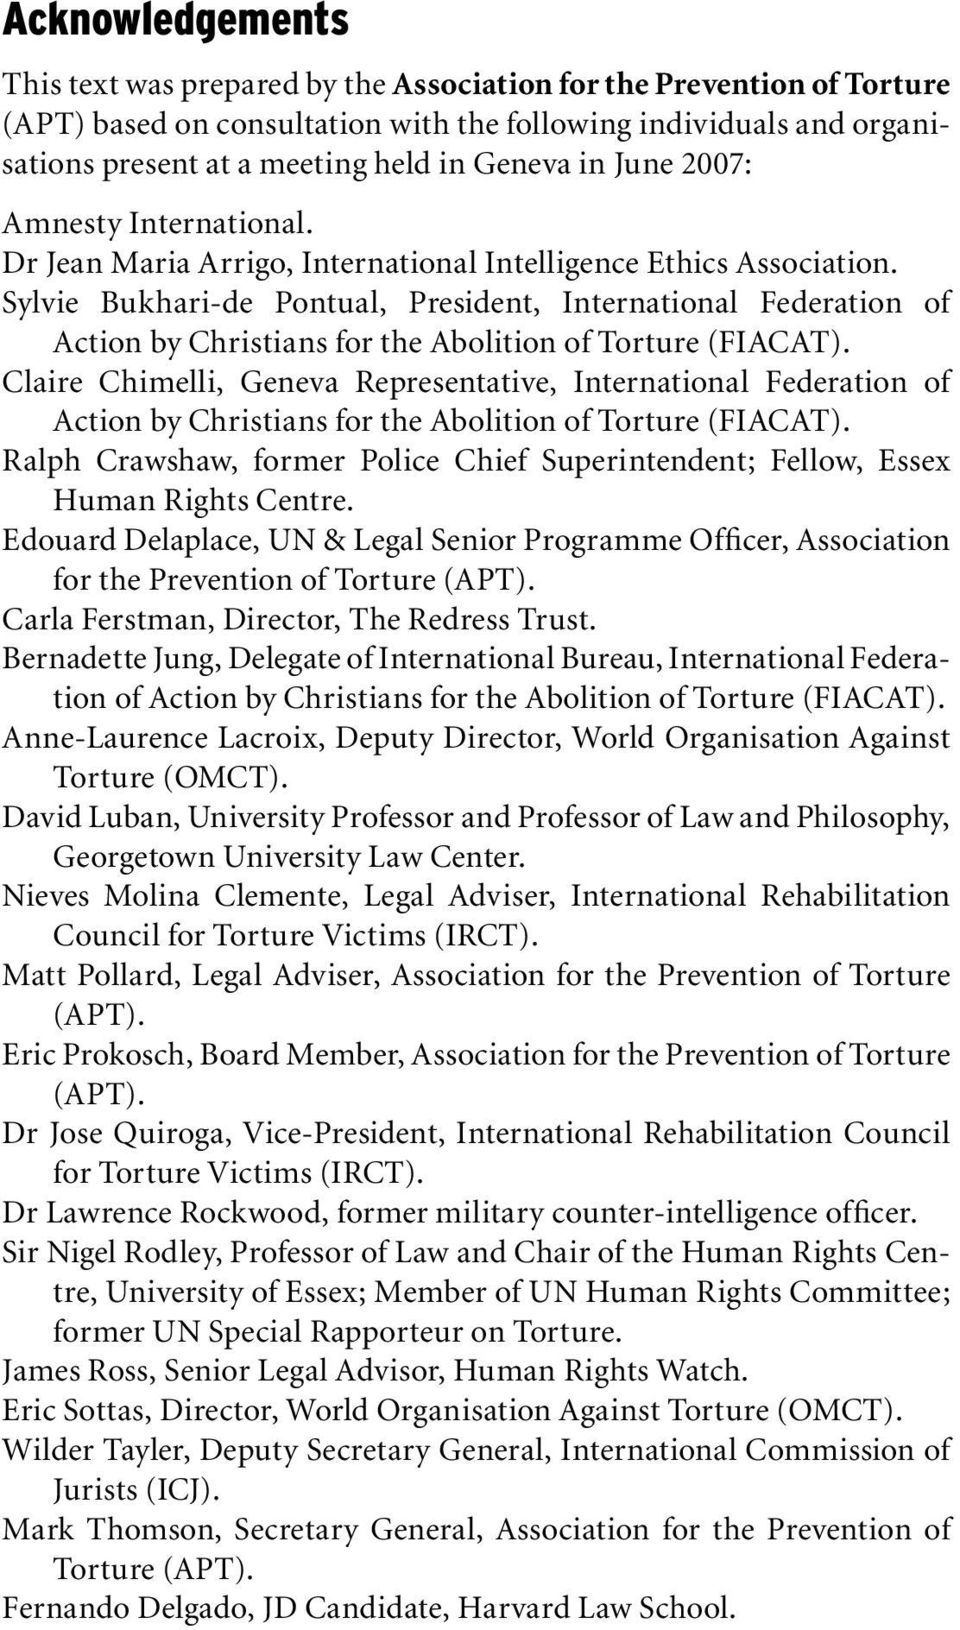 Sylvie Bukhari-de Pontual, President, International Federation of Action by Christians for the Abolition of Torture (FIACAT).